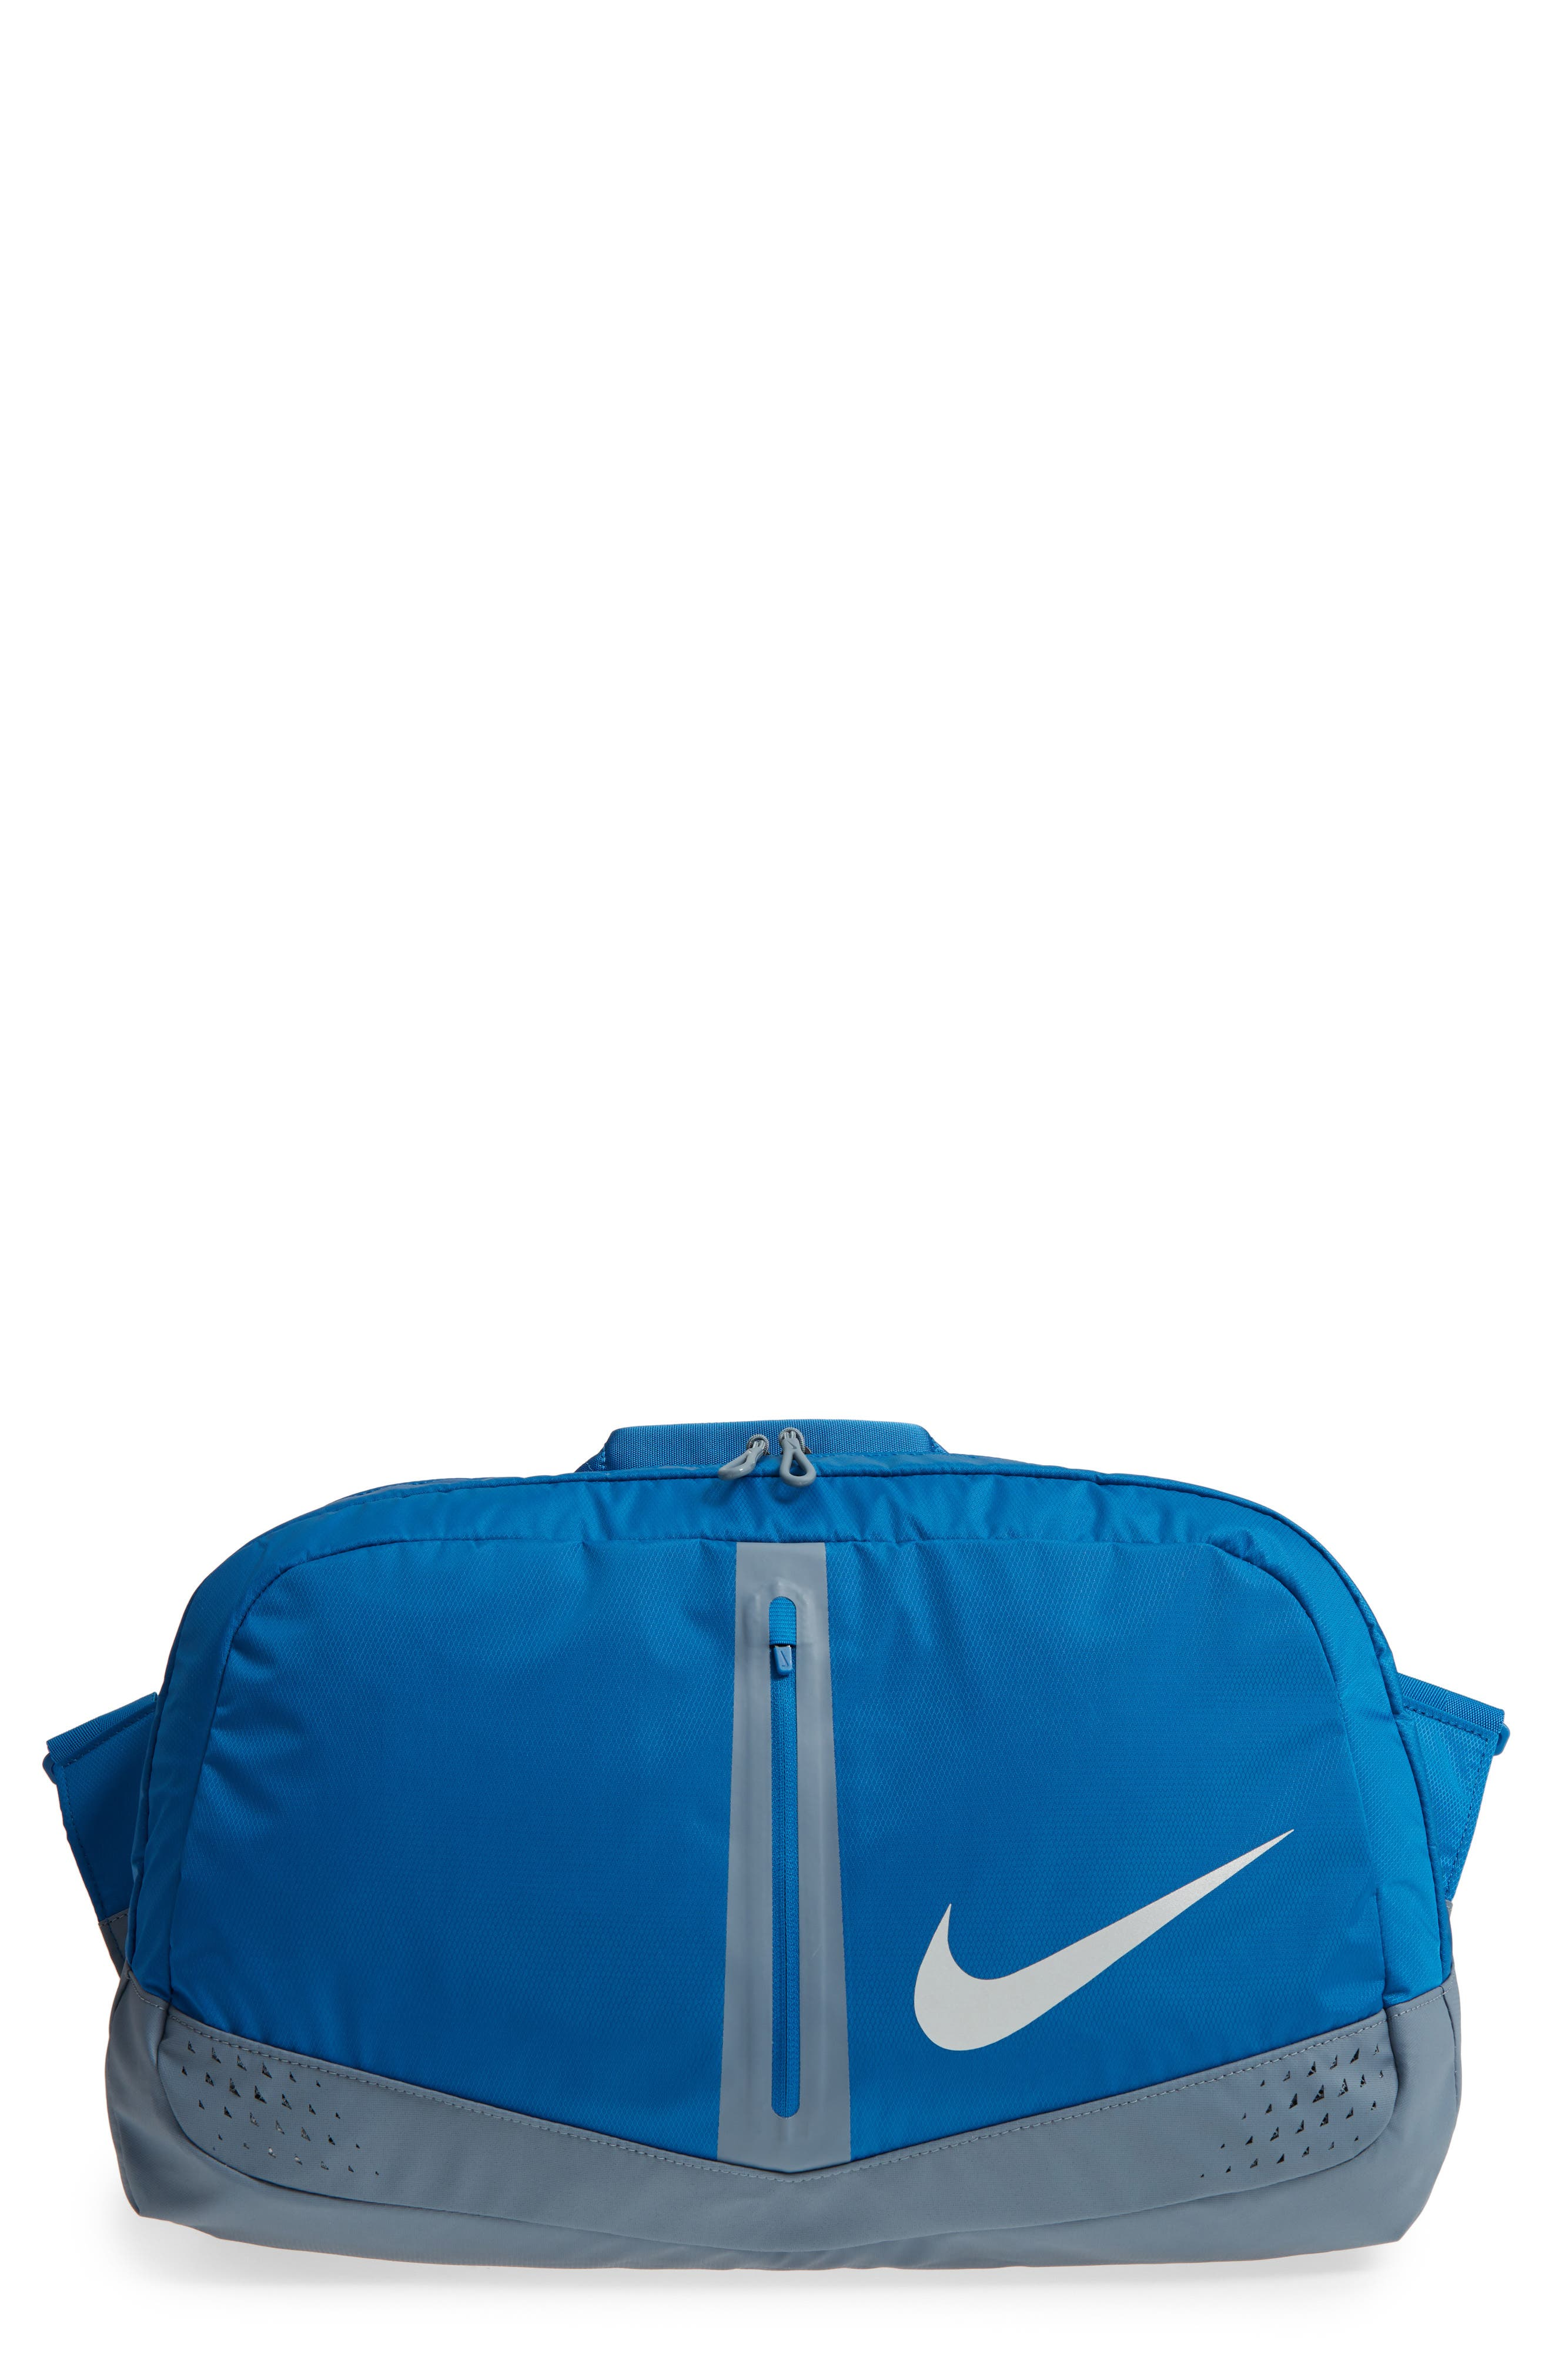 RUN DUFFEL BAG - BLUE